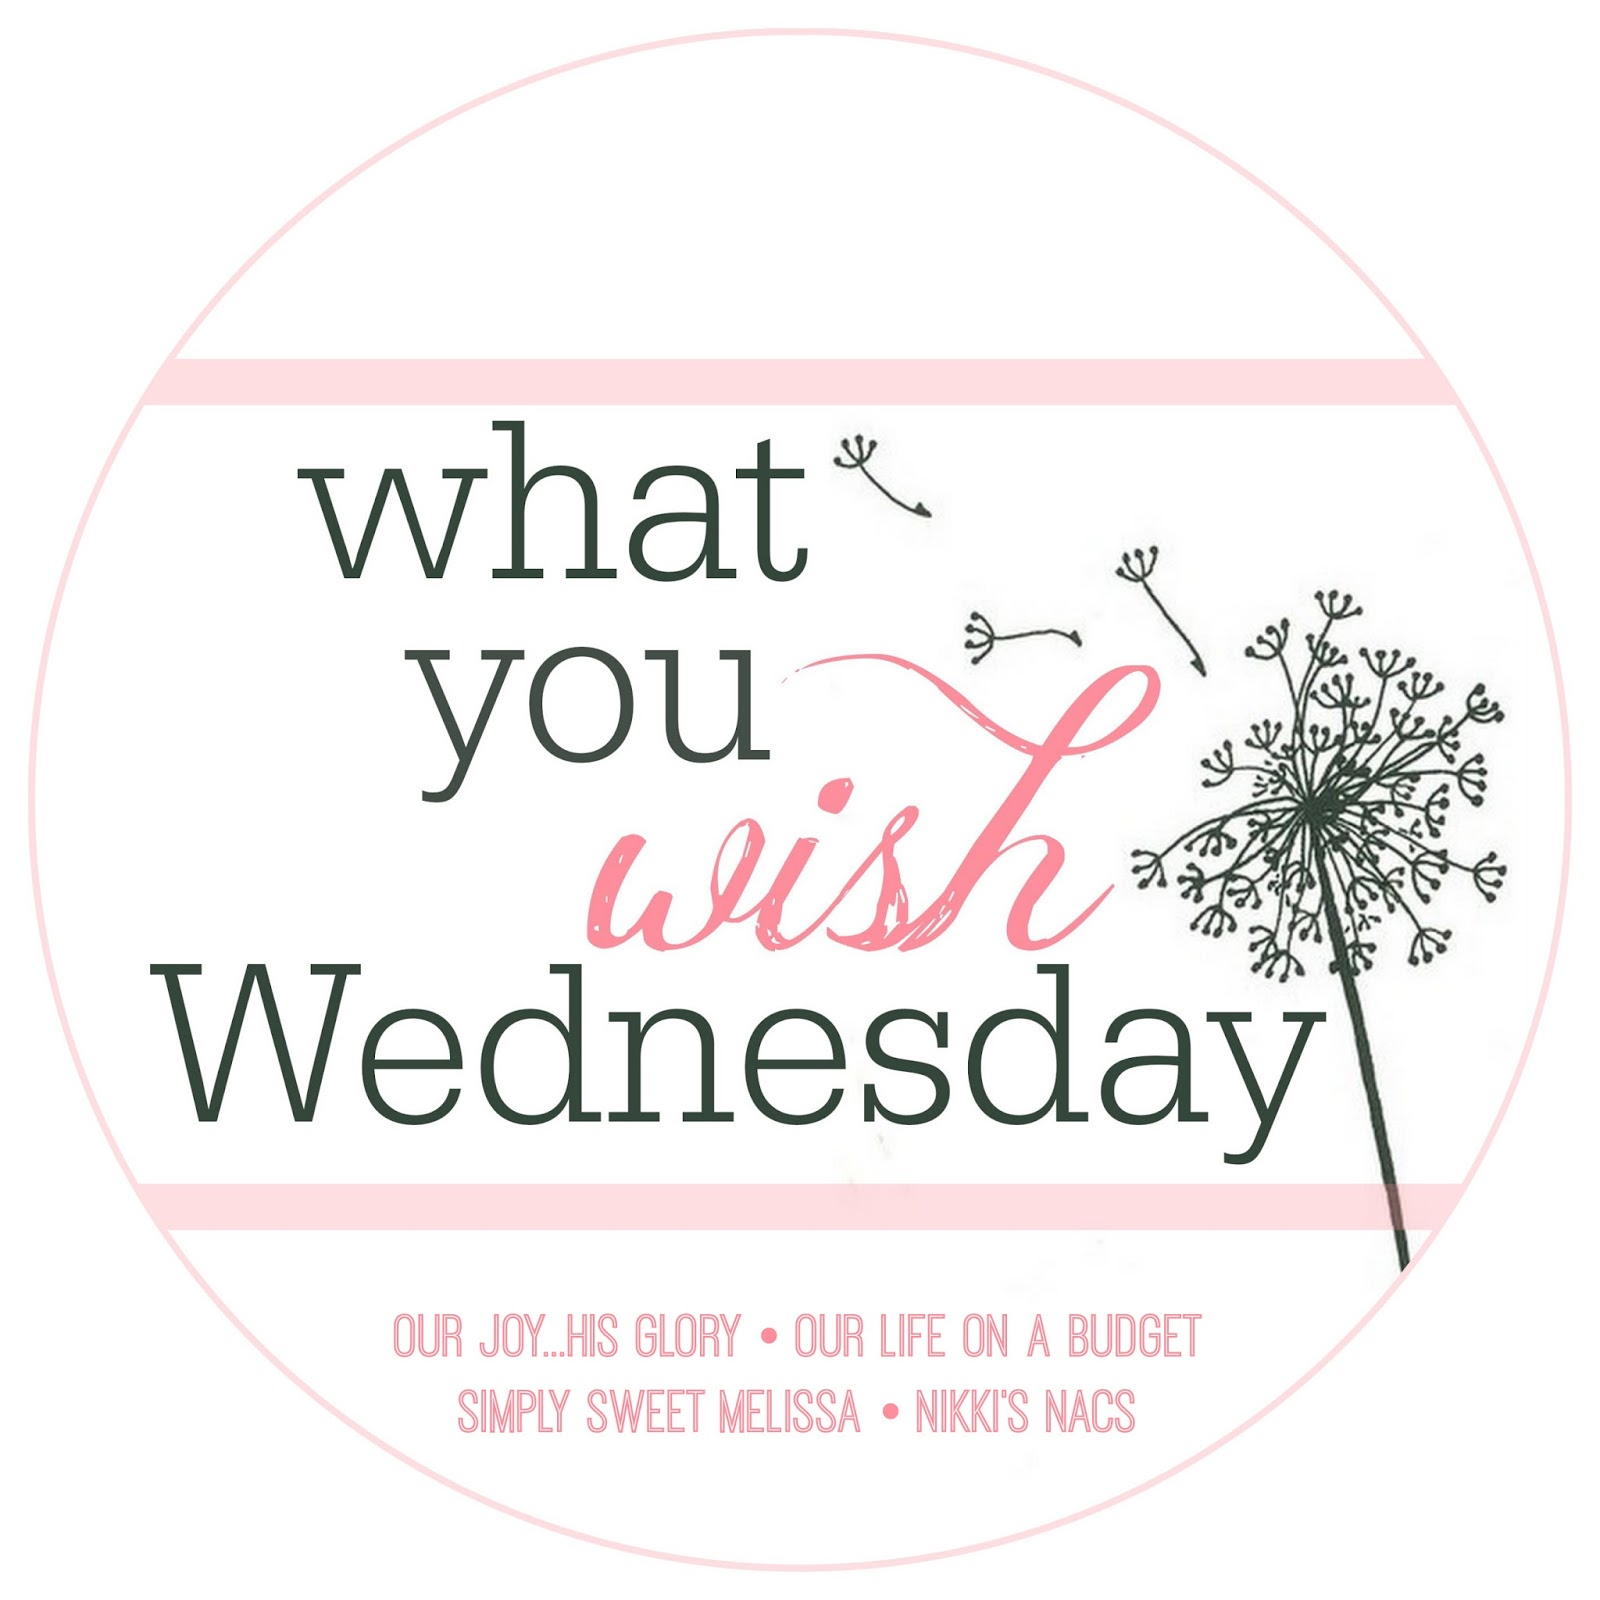 http://nikkisnacs.blogspot.com/2014/06/what-you-wish-wednesday-no-4.html